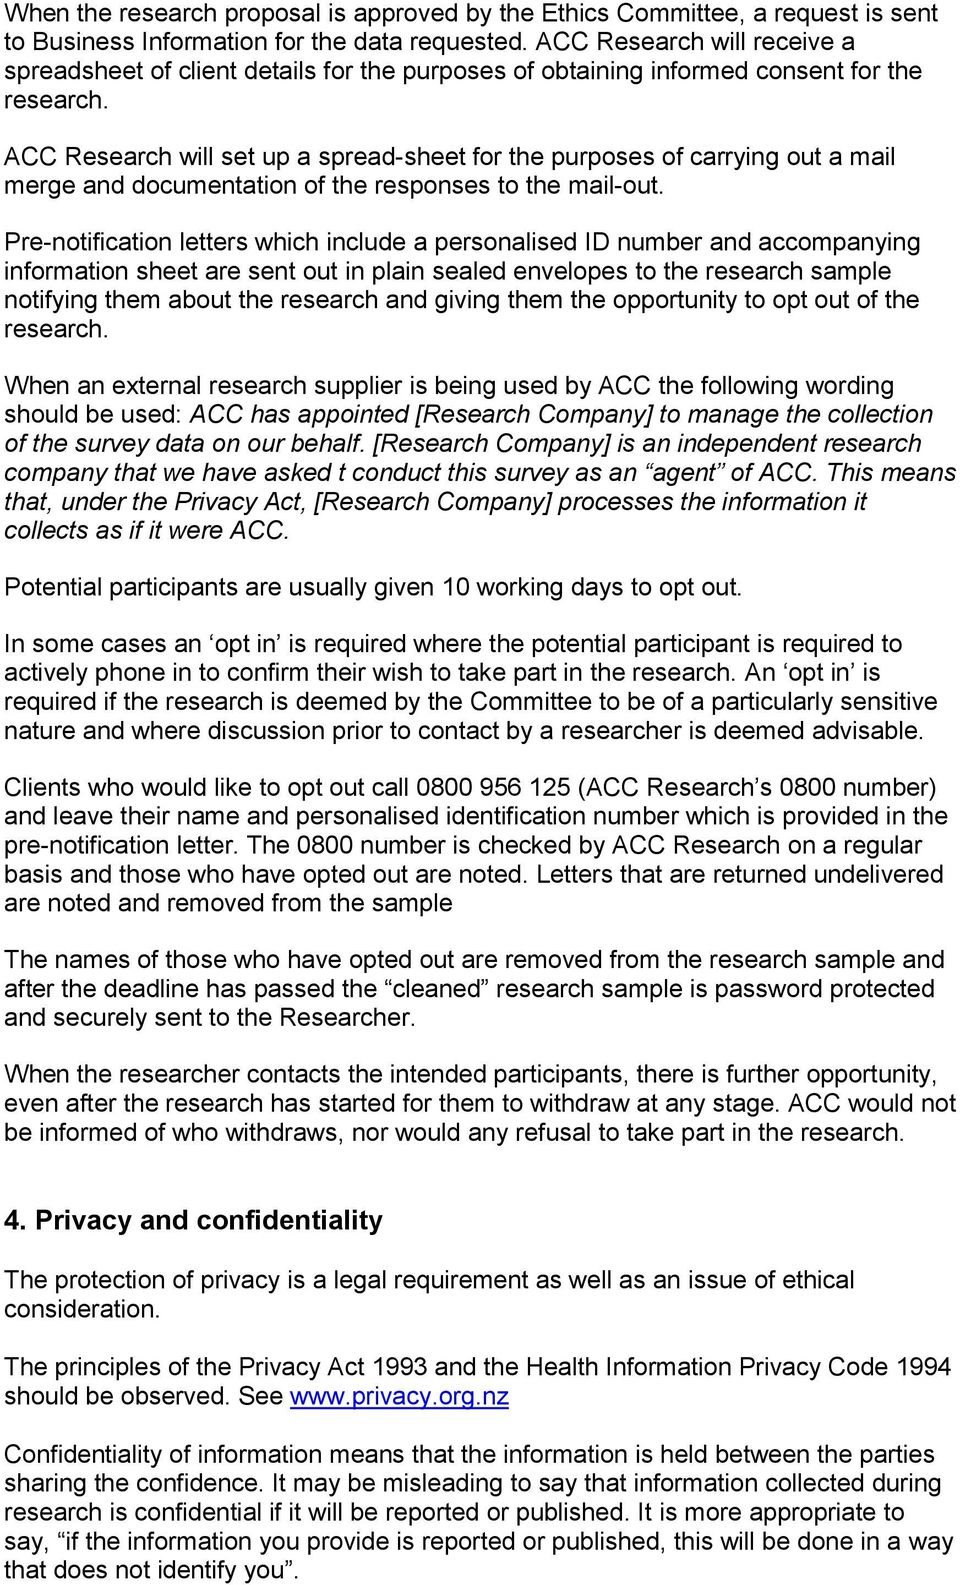 ACC Research will set up a spread-sheet for the purposes of carrying out a mail merge and documentation of the responses to the mail-out.